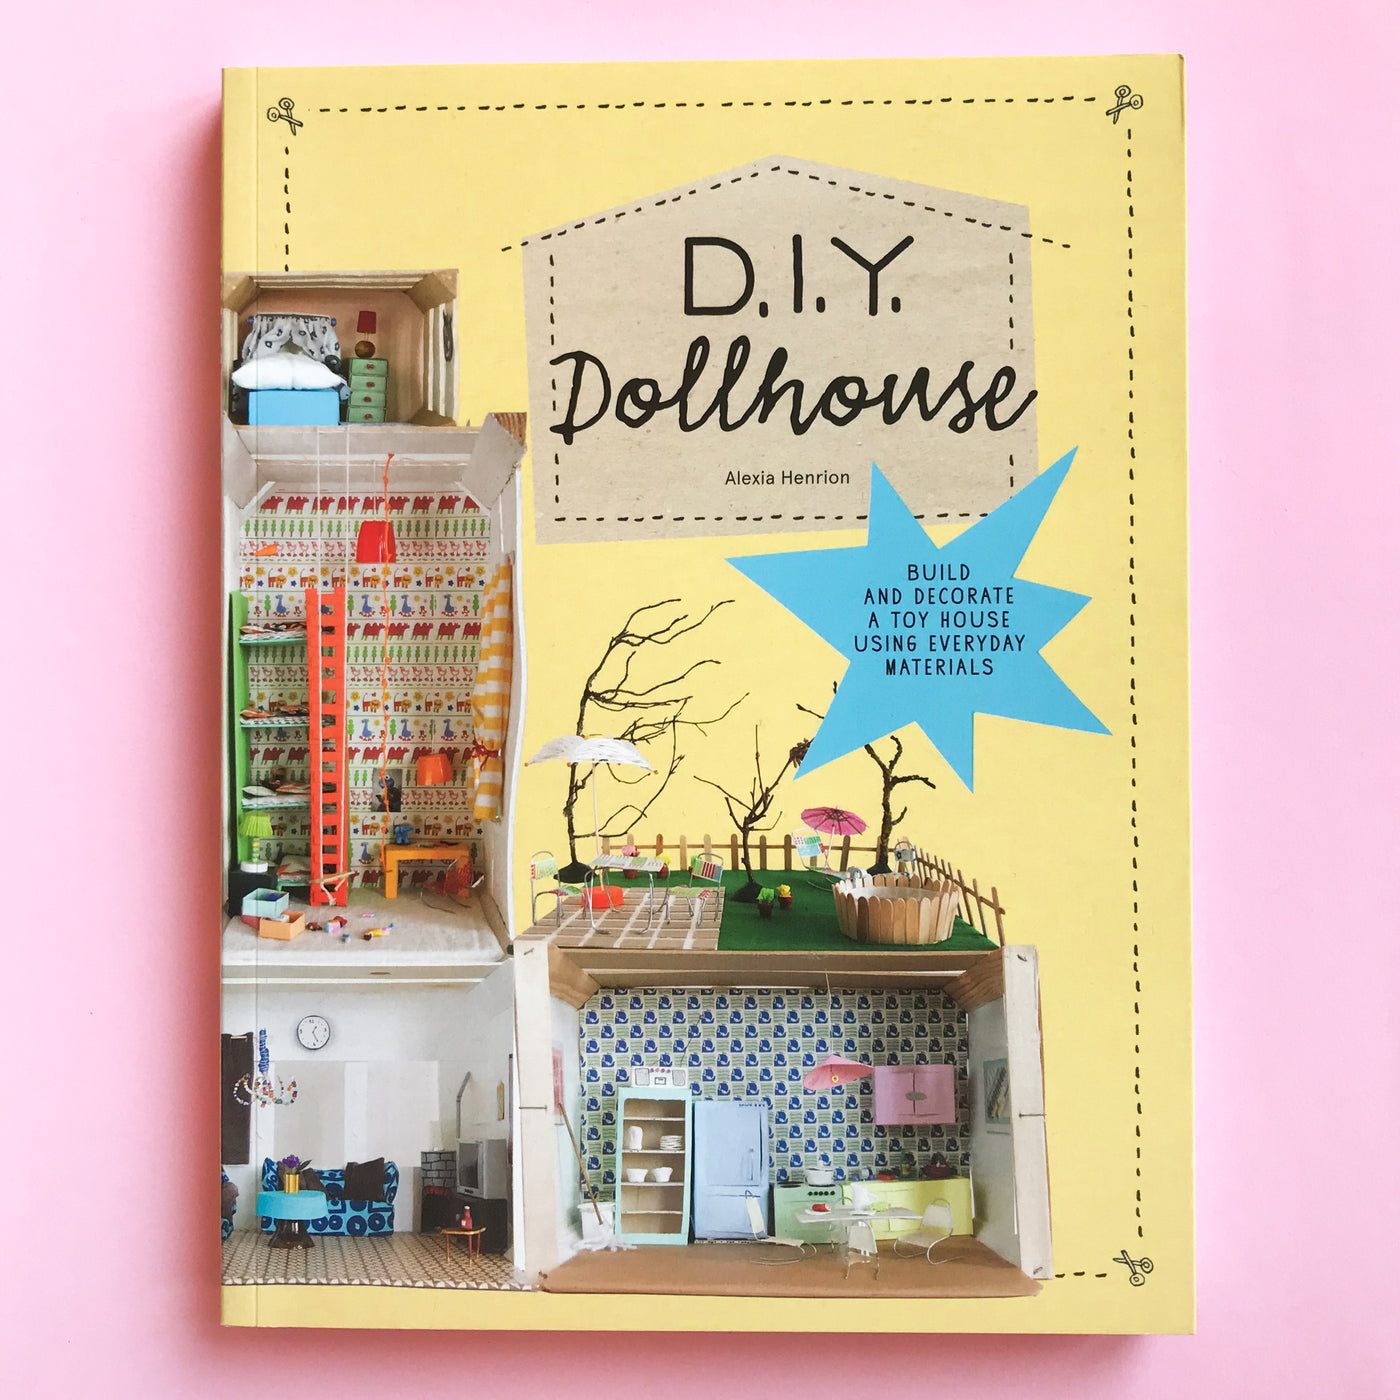 DIY Dollhouse: Build and Decorate a Toy House Using Everyday Materials by Alexia Henrion